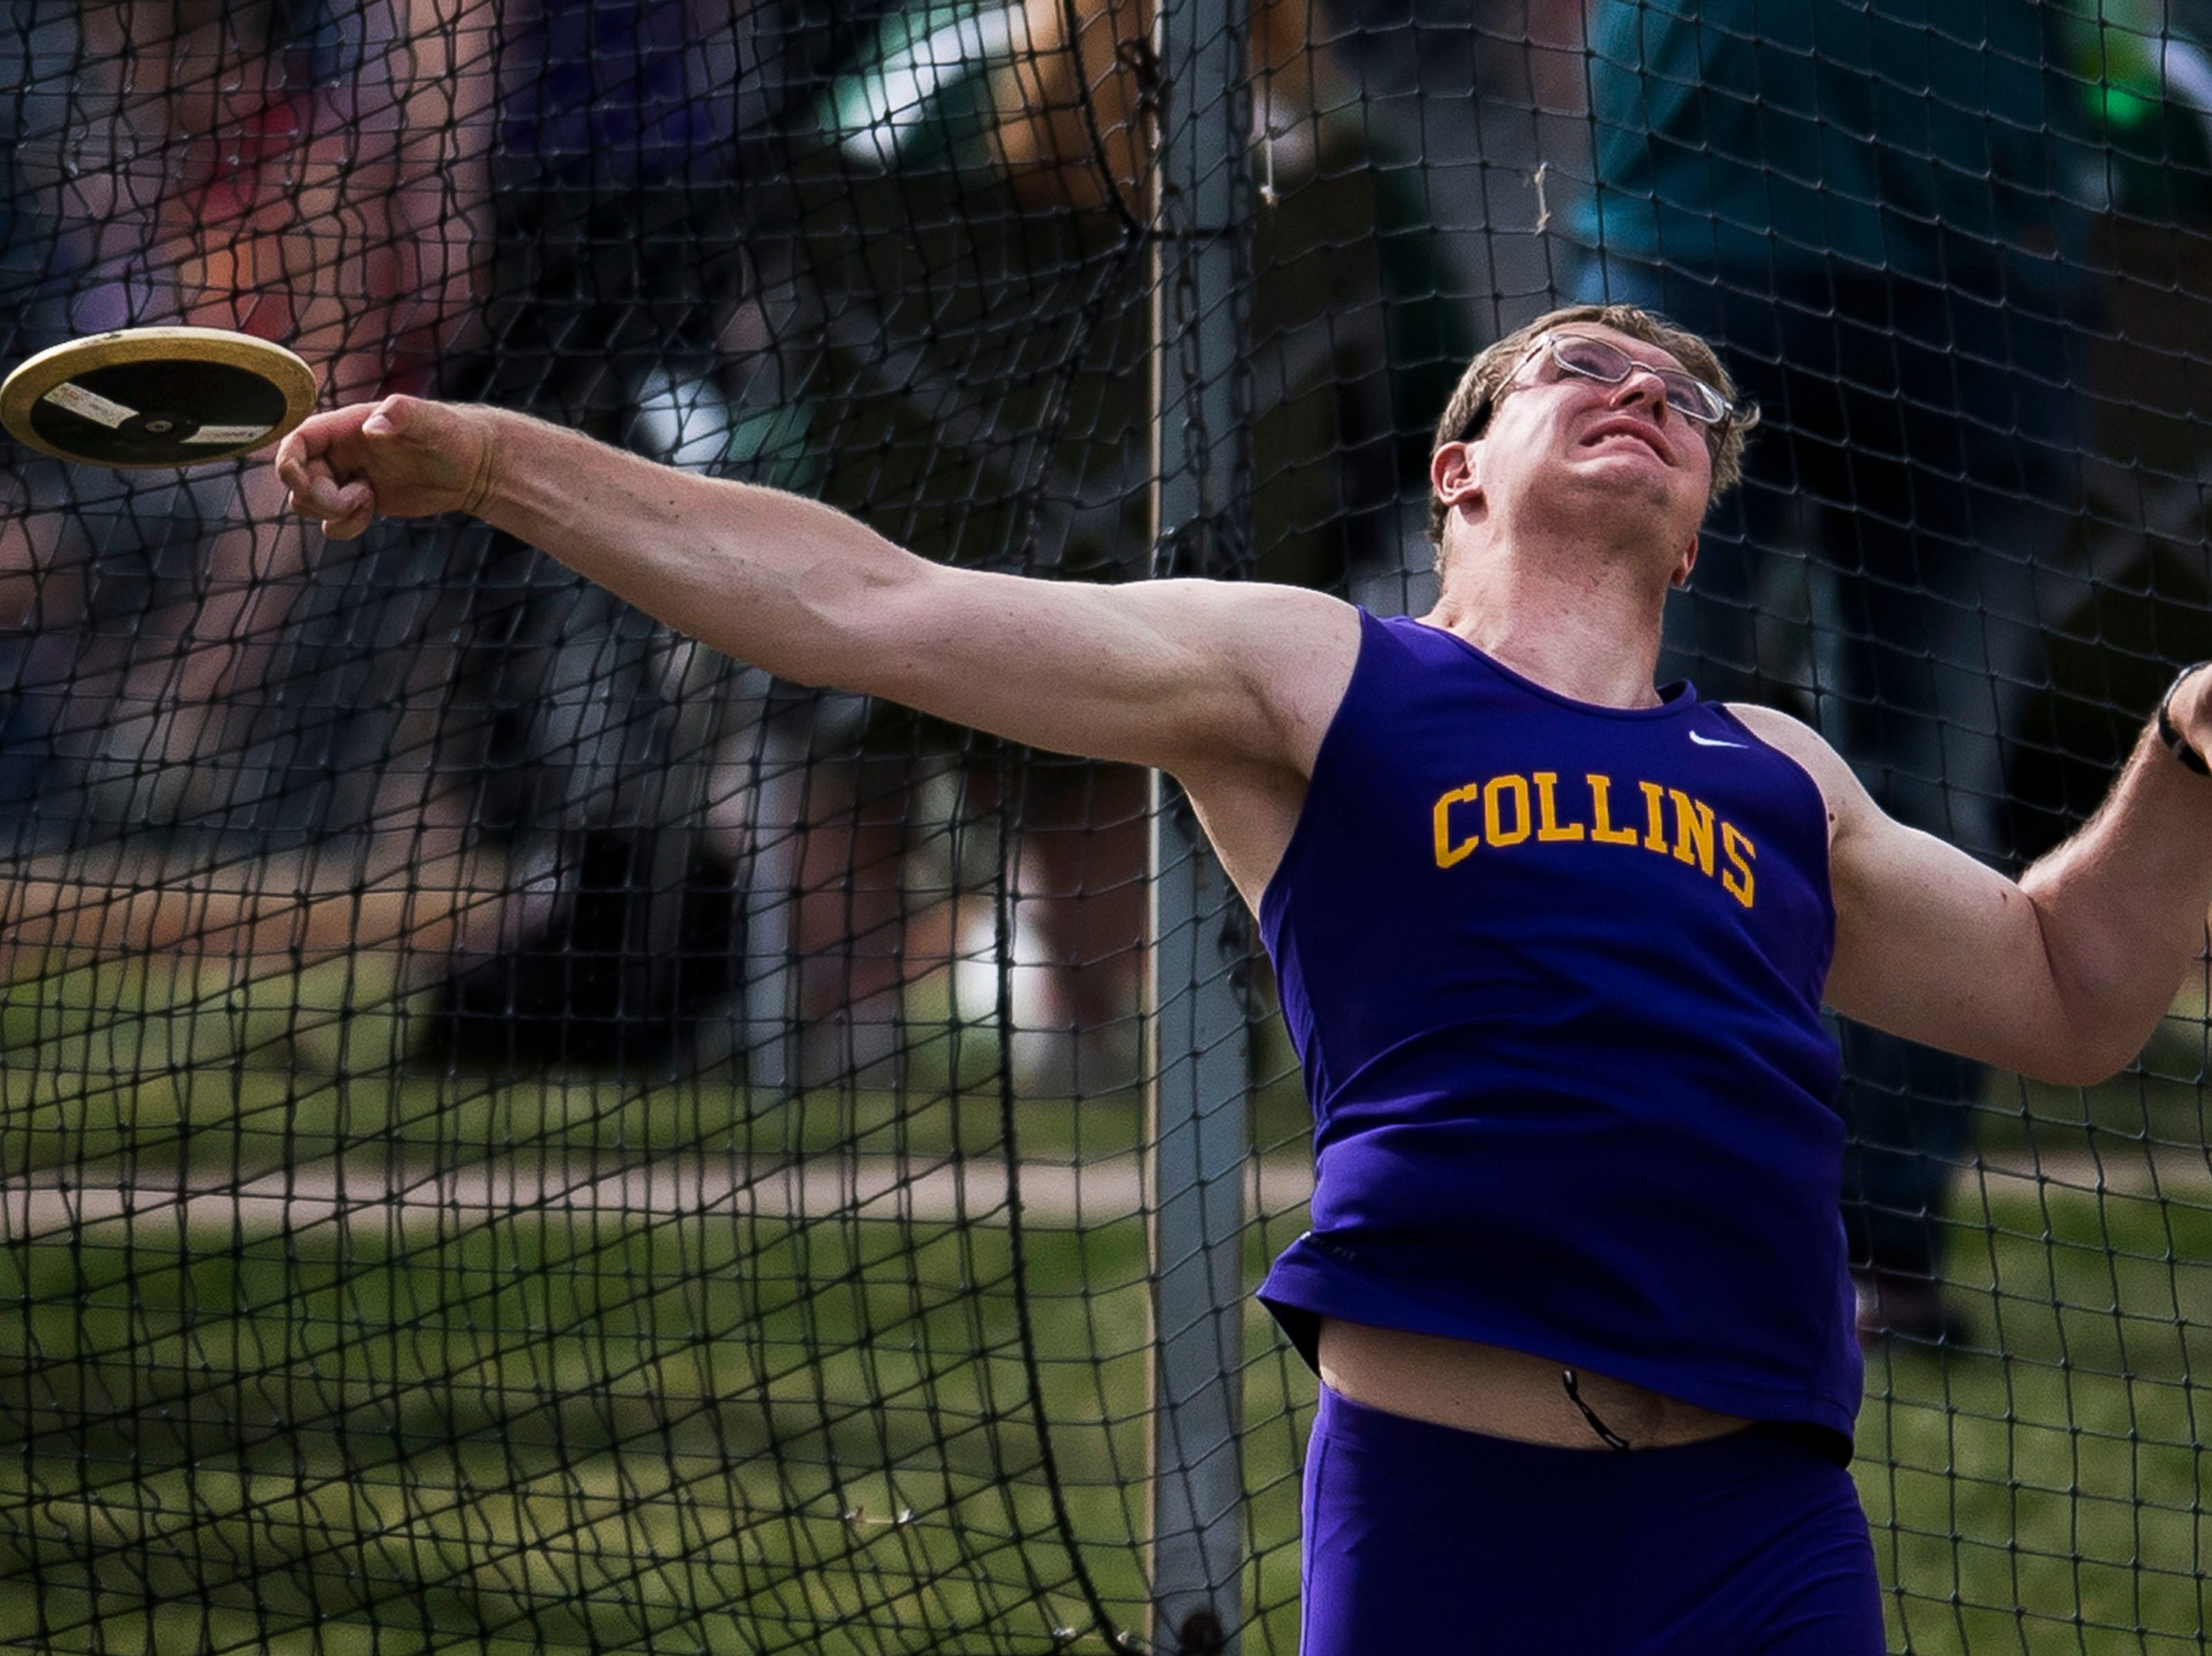 Fort Collins High School senior Joshua Rudd competes in the discus throw during the Randy Yaussi City Track Championships on Tuesday, April 9, 2019, at French Field in Fort Collins, Colo.